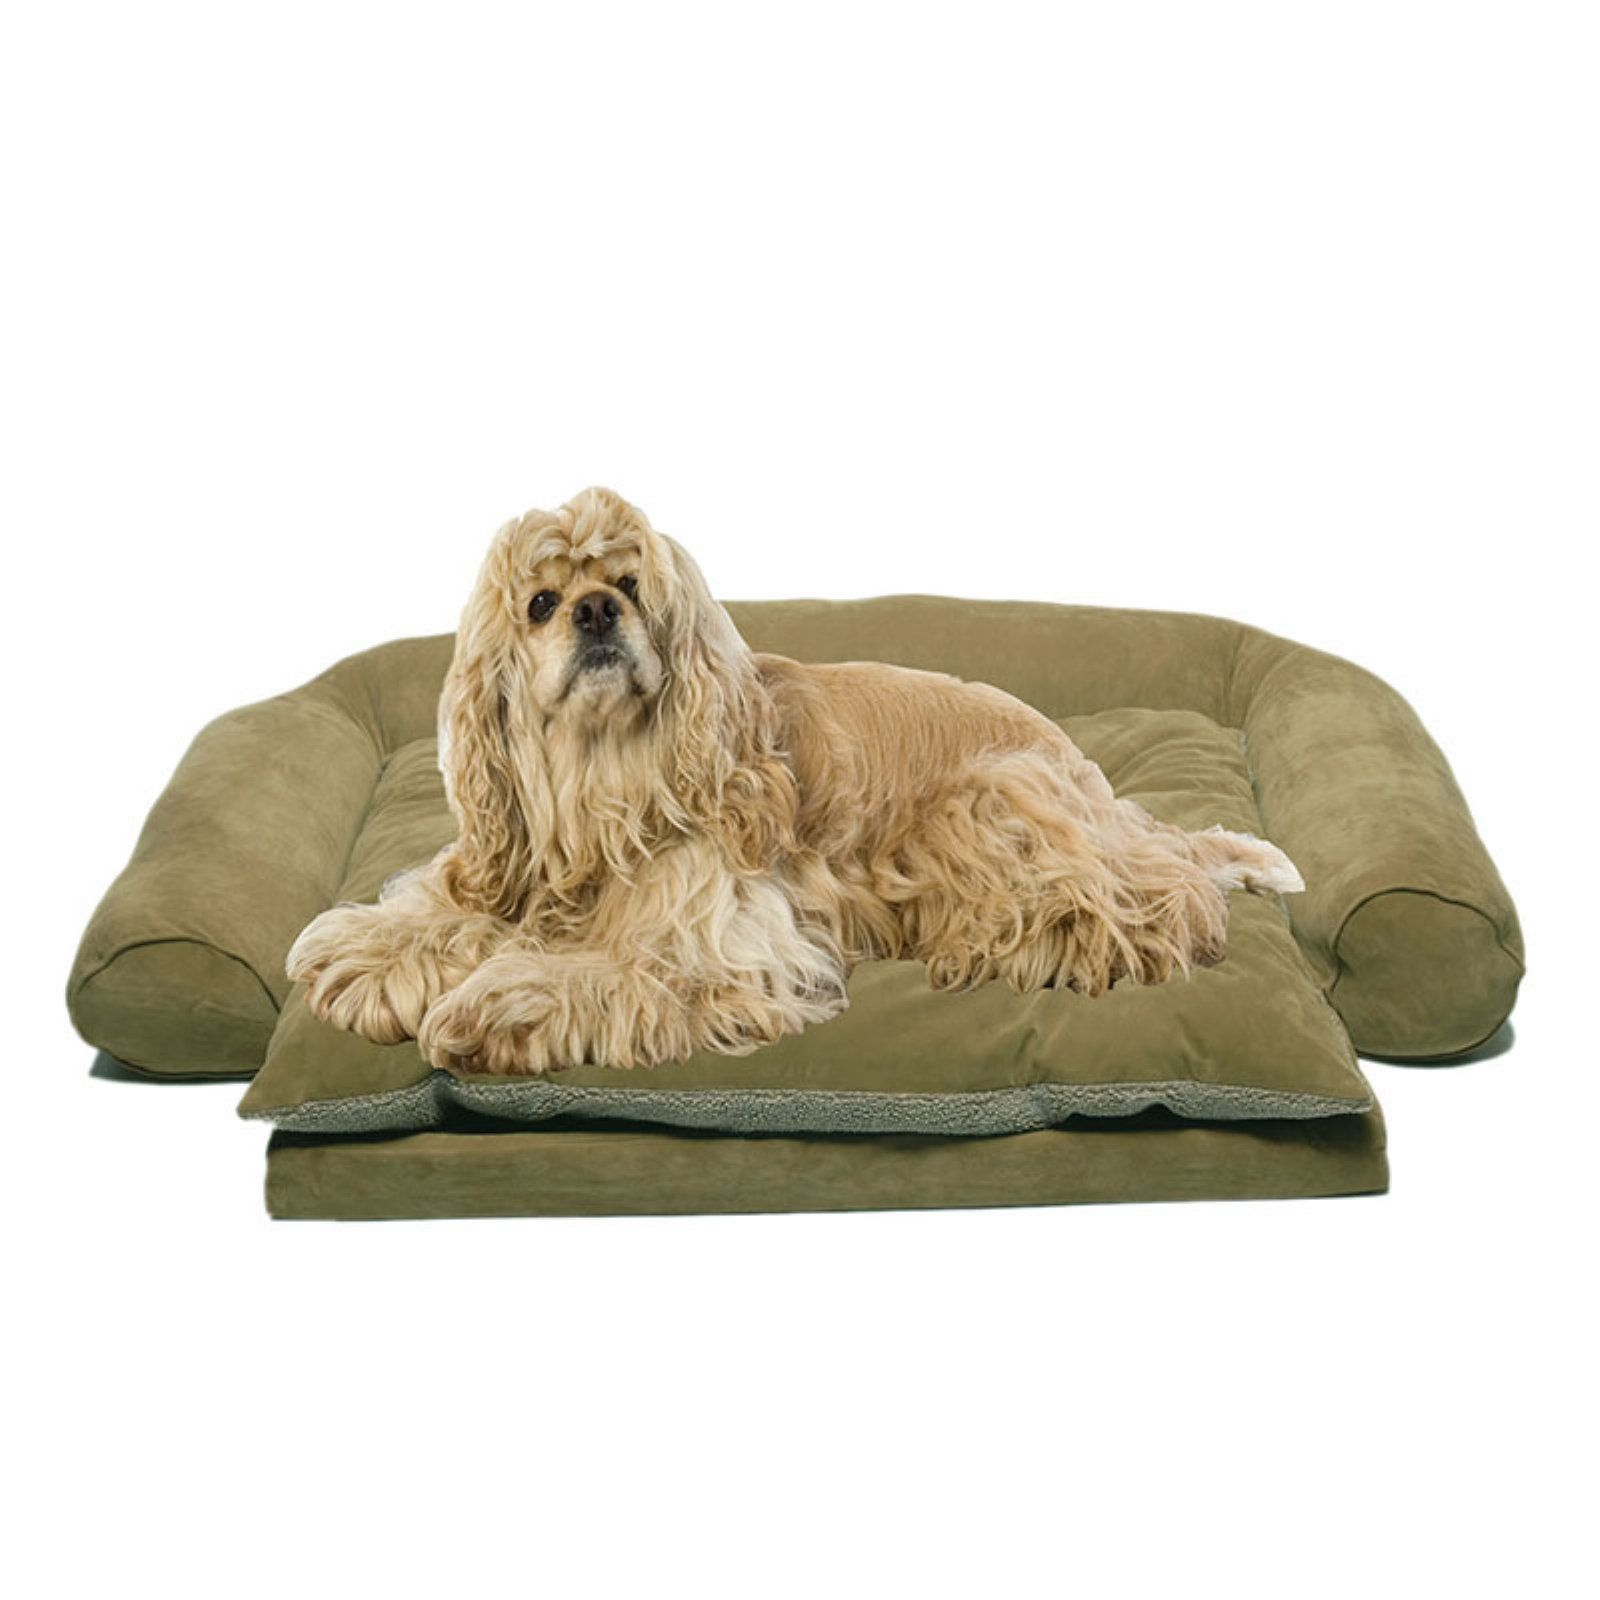 Carolina Pet Company Personalized Ortho Sleeper Comfort